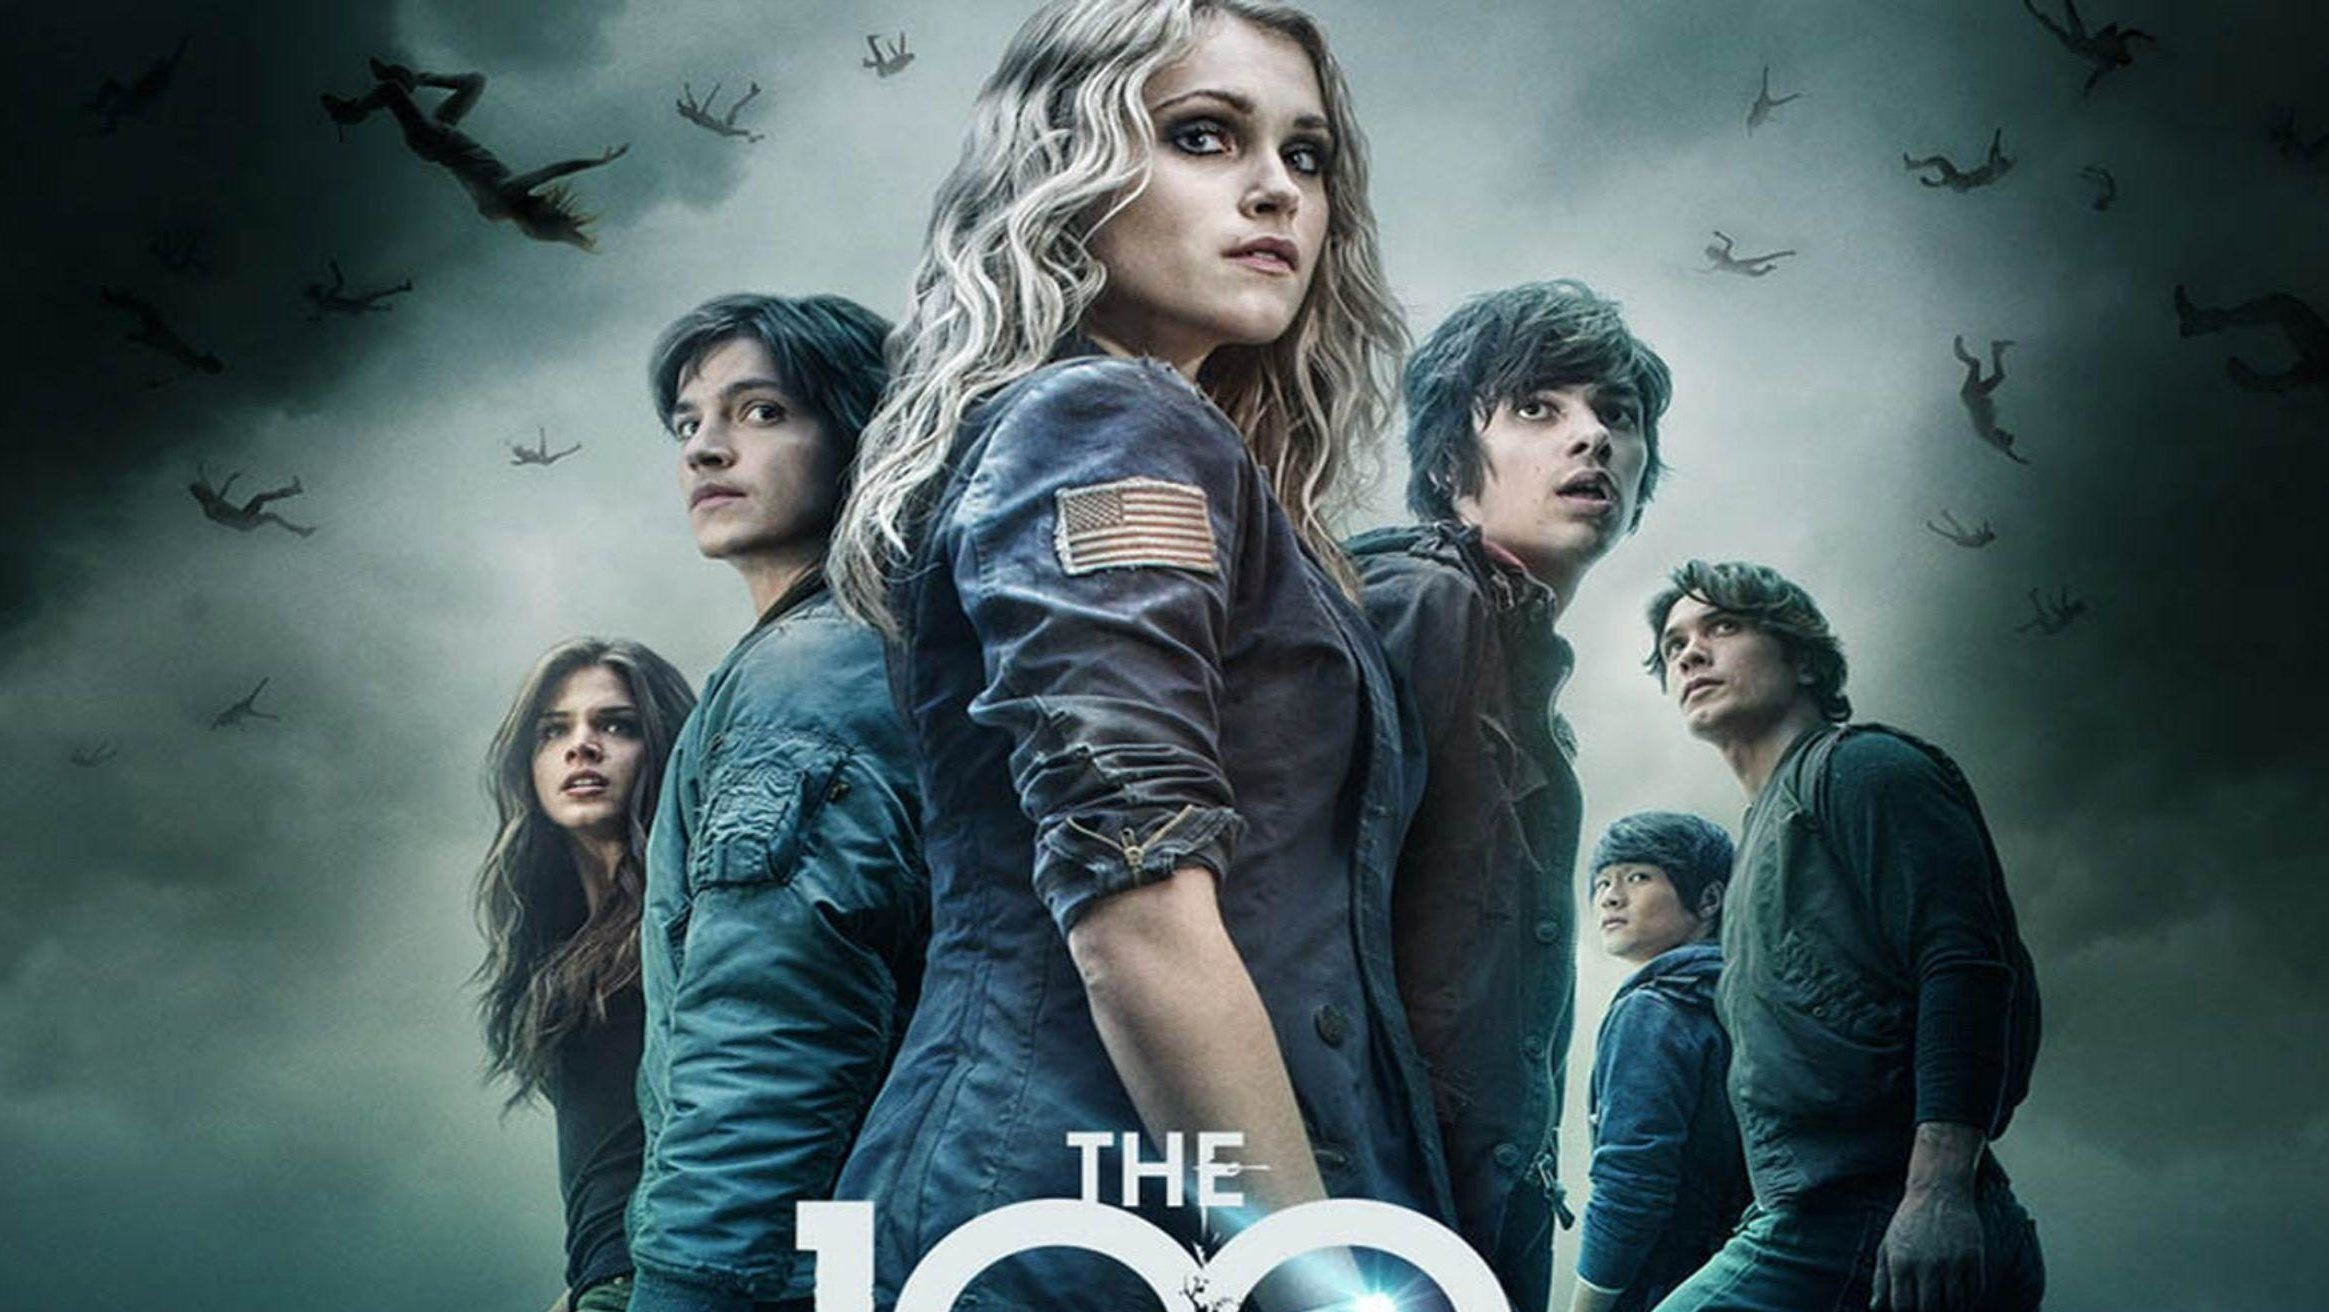 The 100 Season 7 Release Date, CW Trailer, Cast, Plot Details and Return of Marie Avgeropoulos as Octavia